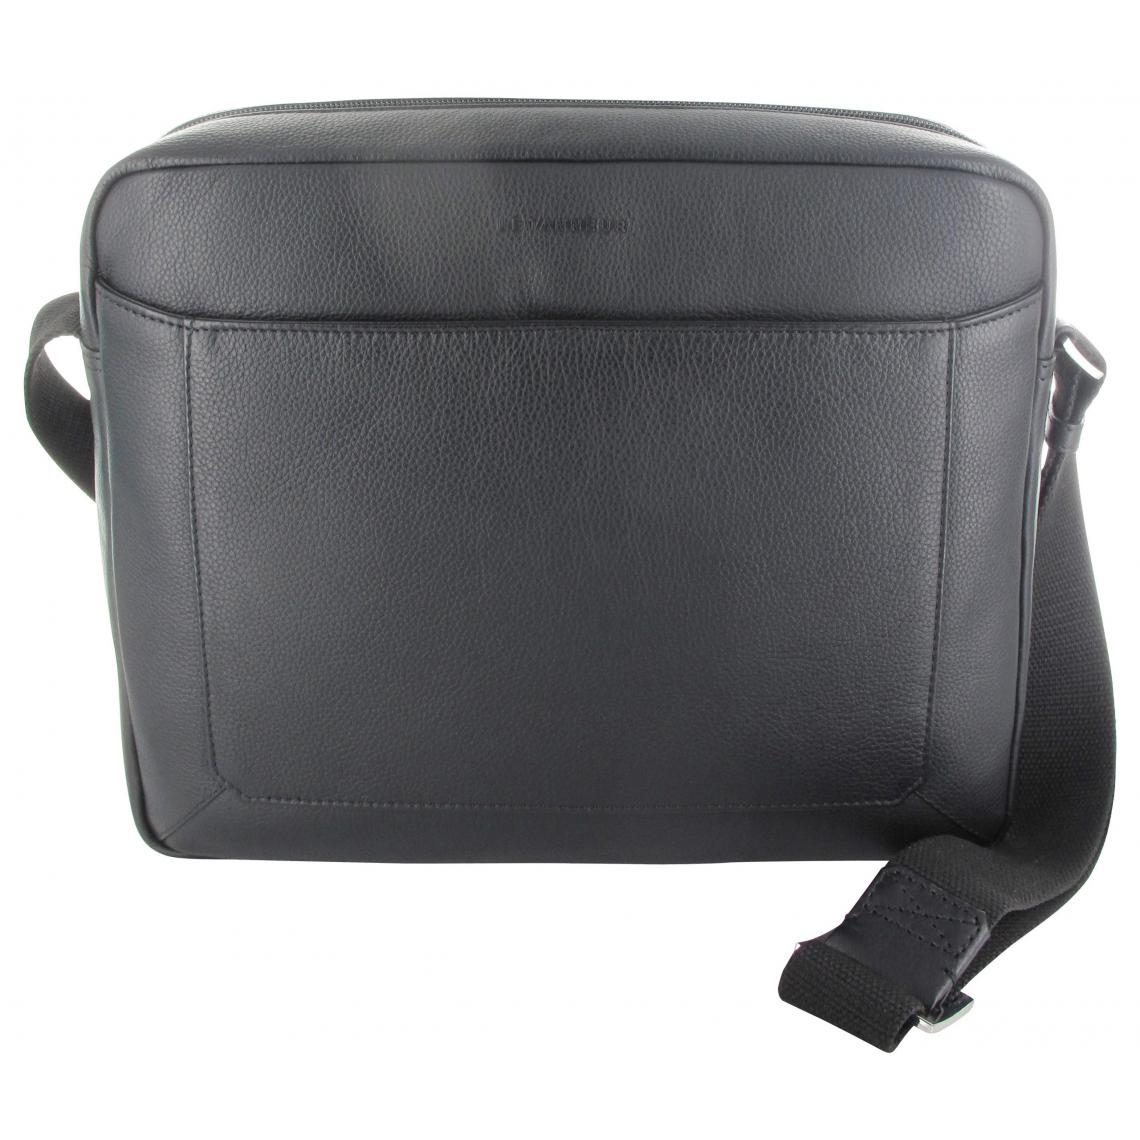 check-out ecd54 b20f0 SAC BESACE REPORTER GM CUIR BRUNO - Tendance-Le Tanneur | 3 ...